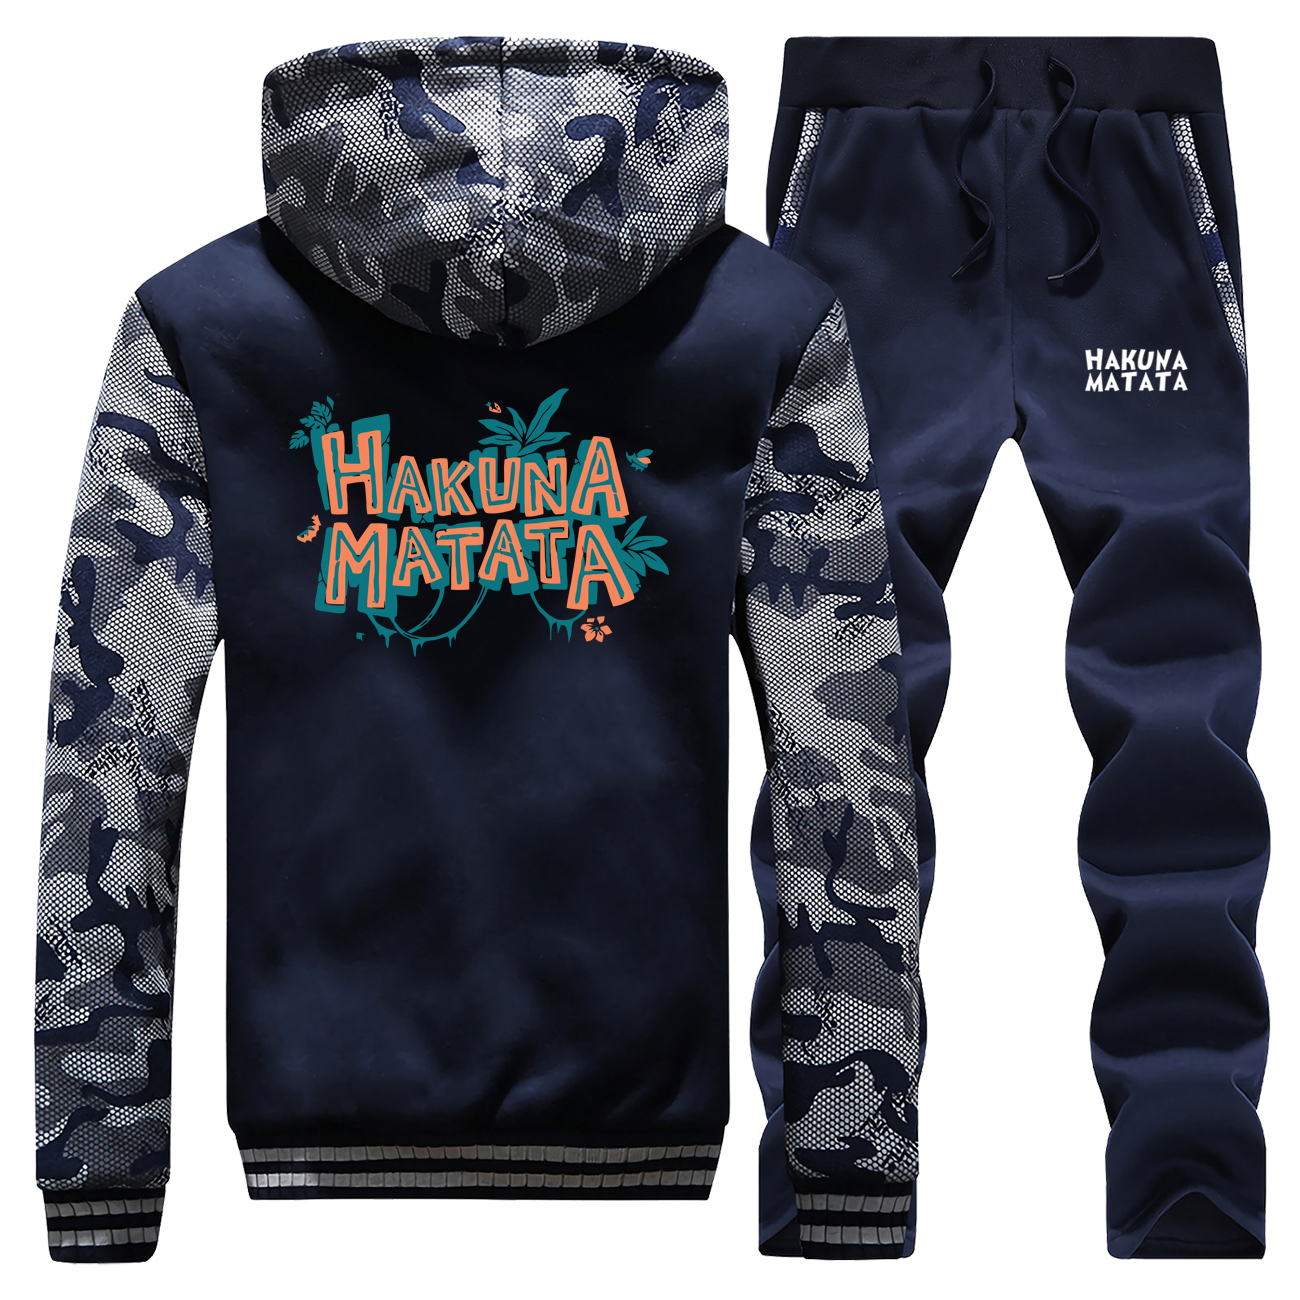 The Lion King Friends Sweatshirt+Sweatpants Mens Hakuna Matata Cartoon Thick Hoodies Hip Hop Zip Men Jacket Harajuku Tracksuit